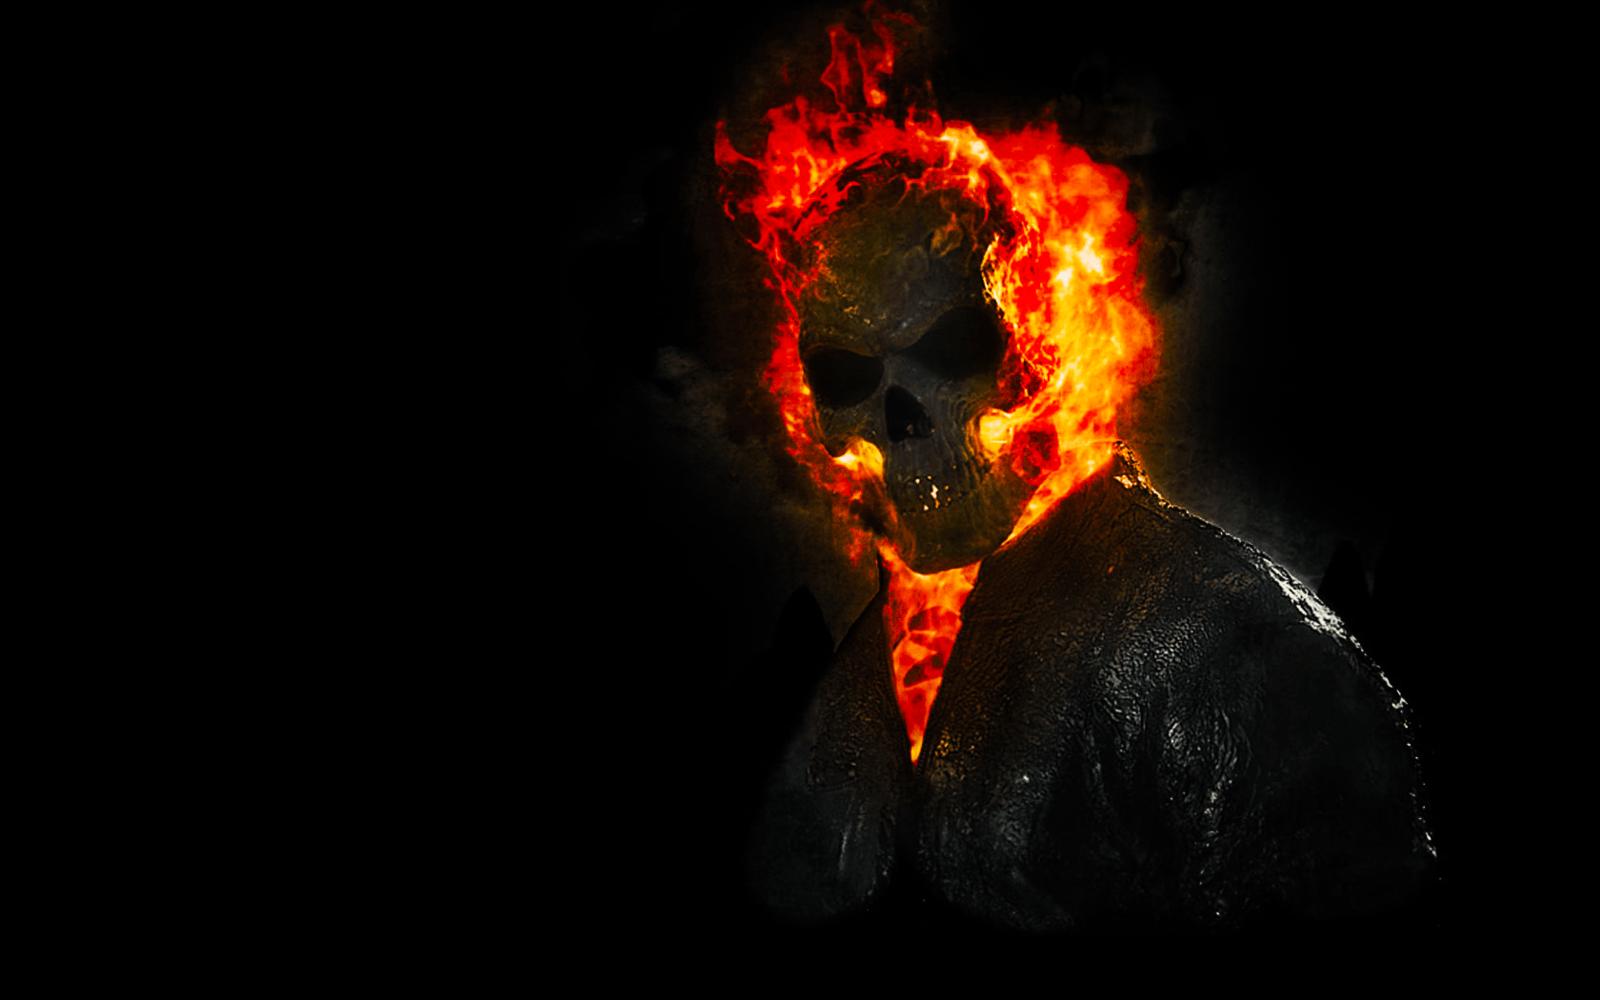 Ghost Rider Movie Wallpapers - Wallpaper Cave